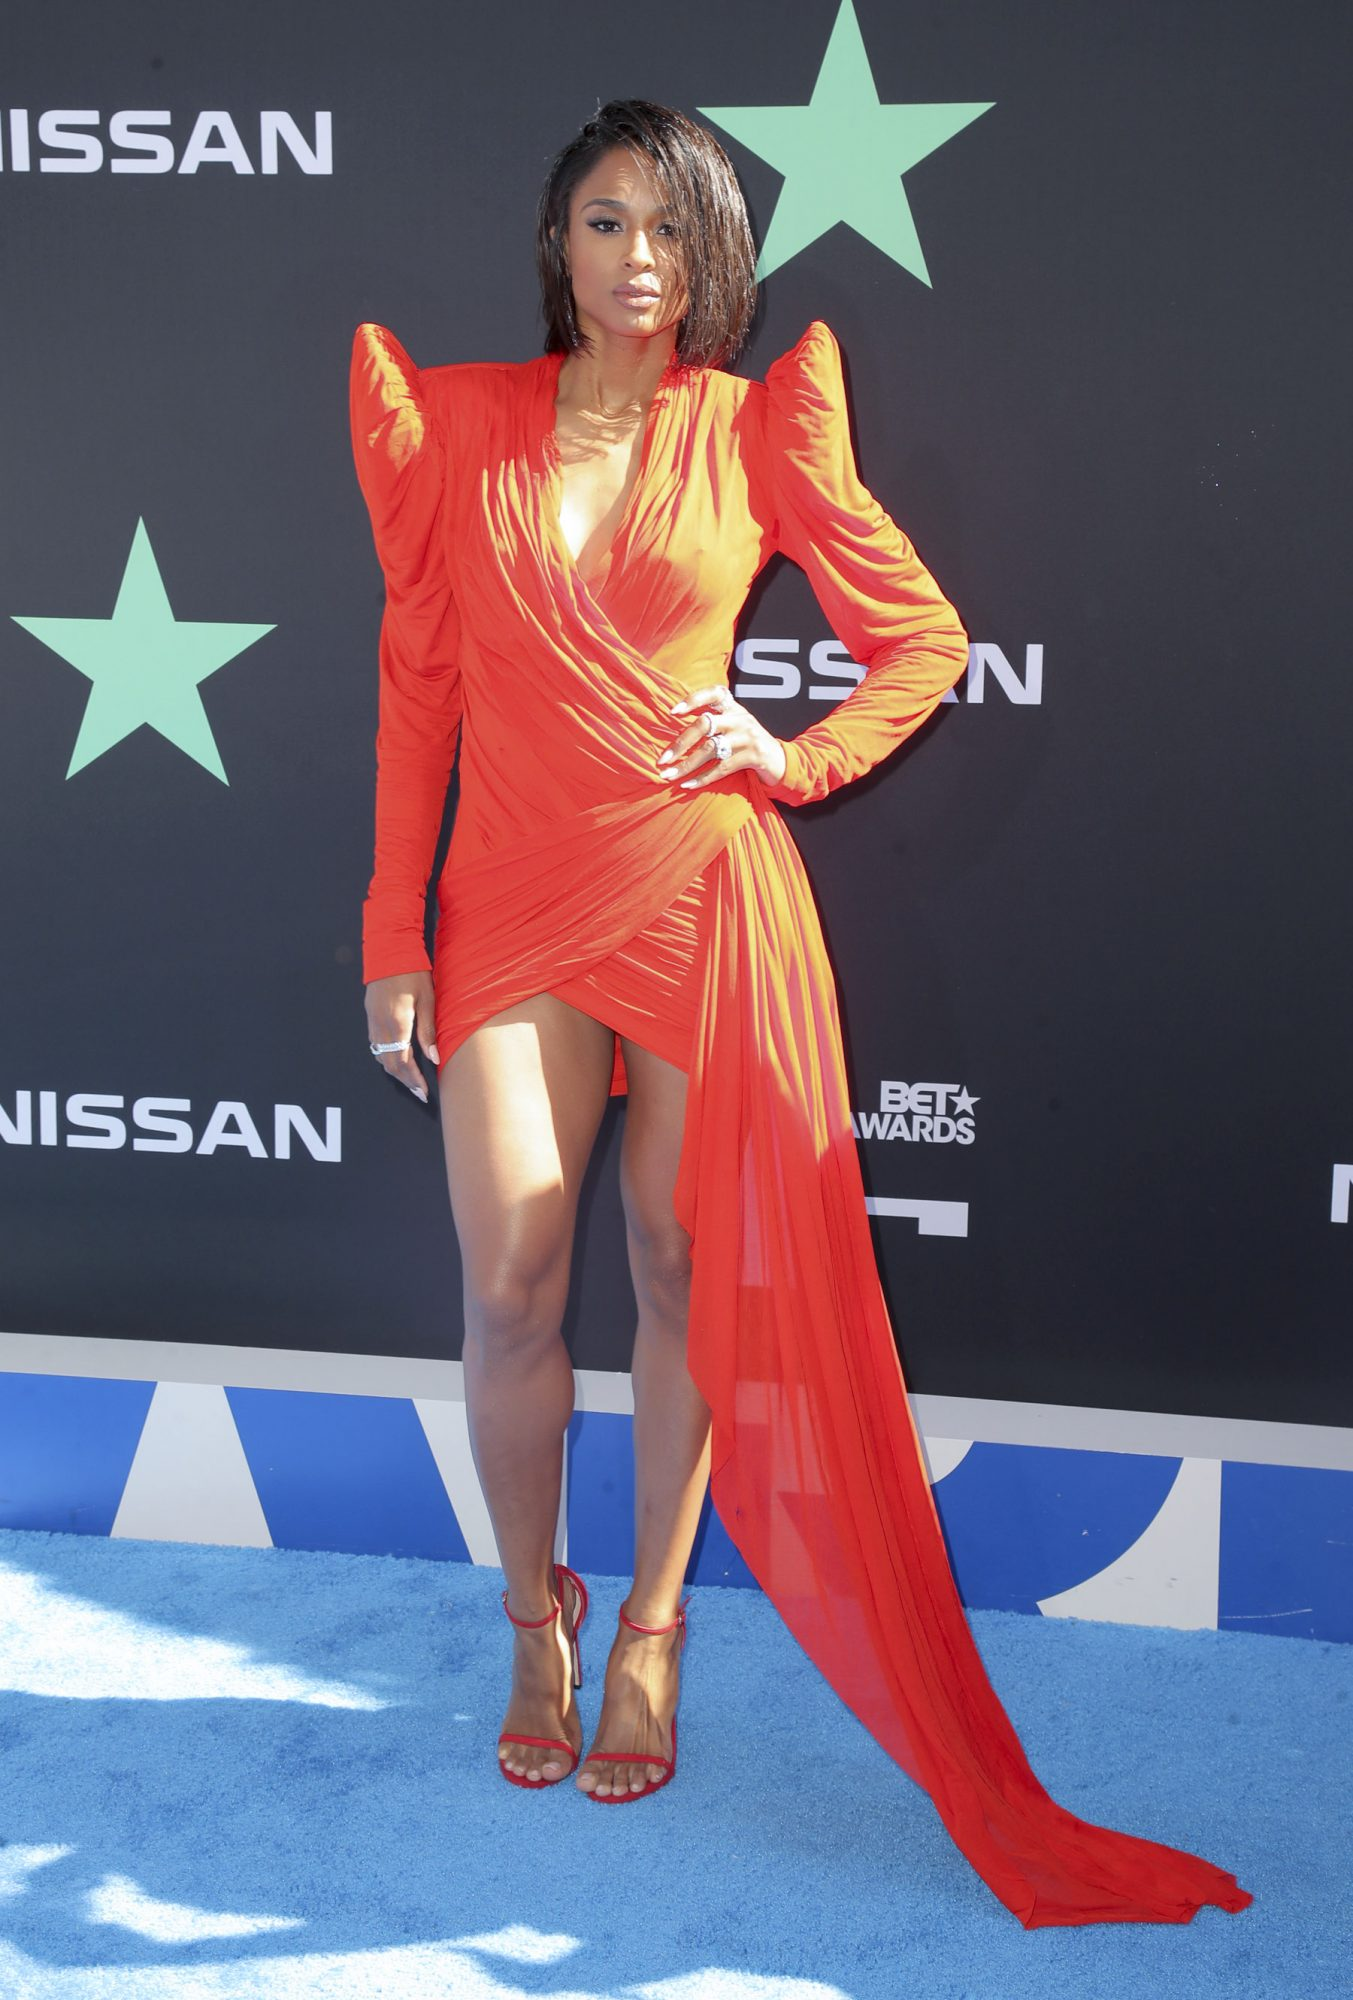 Mandatory Credit: Photo by Chelsea Lauren/Shutterstock (10317961kf) Ciara BET Awards, Arrivals, Microsoft Theater, Los Angeles, USA - 23 Jun 2019